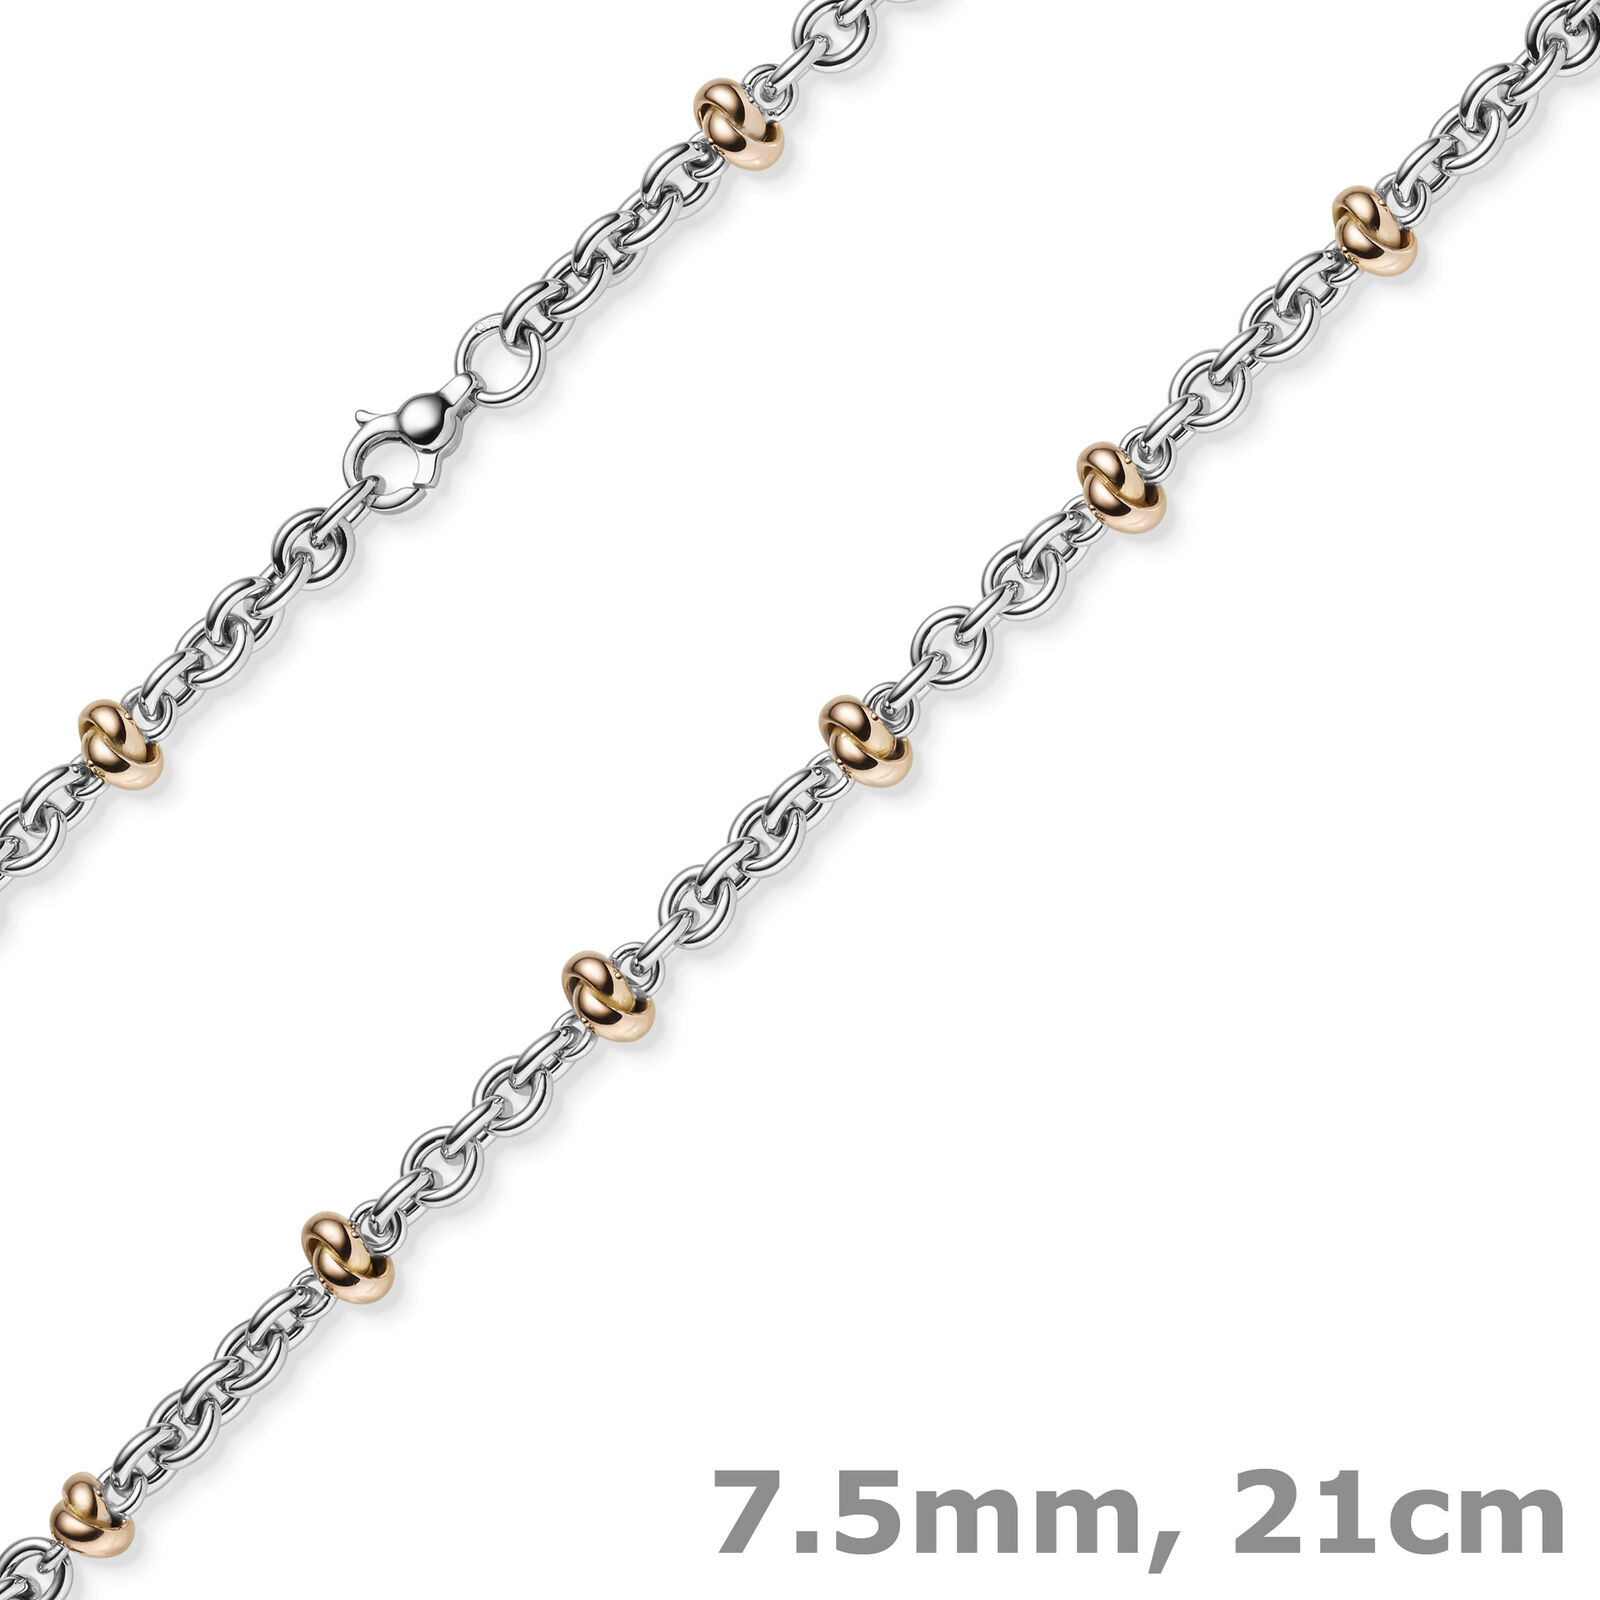 0 5 16in Bracelet Pea Chain Fantasy 585 gold White & pink 8 9 32In